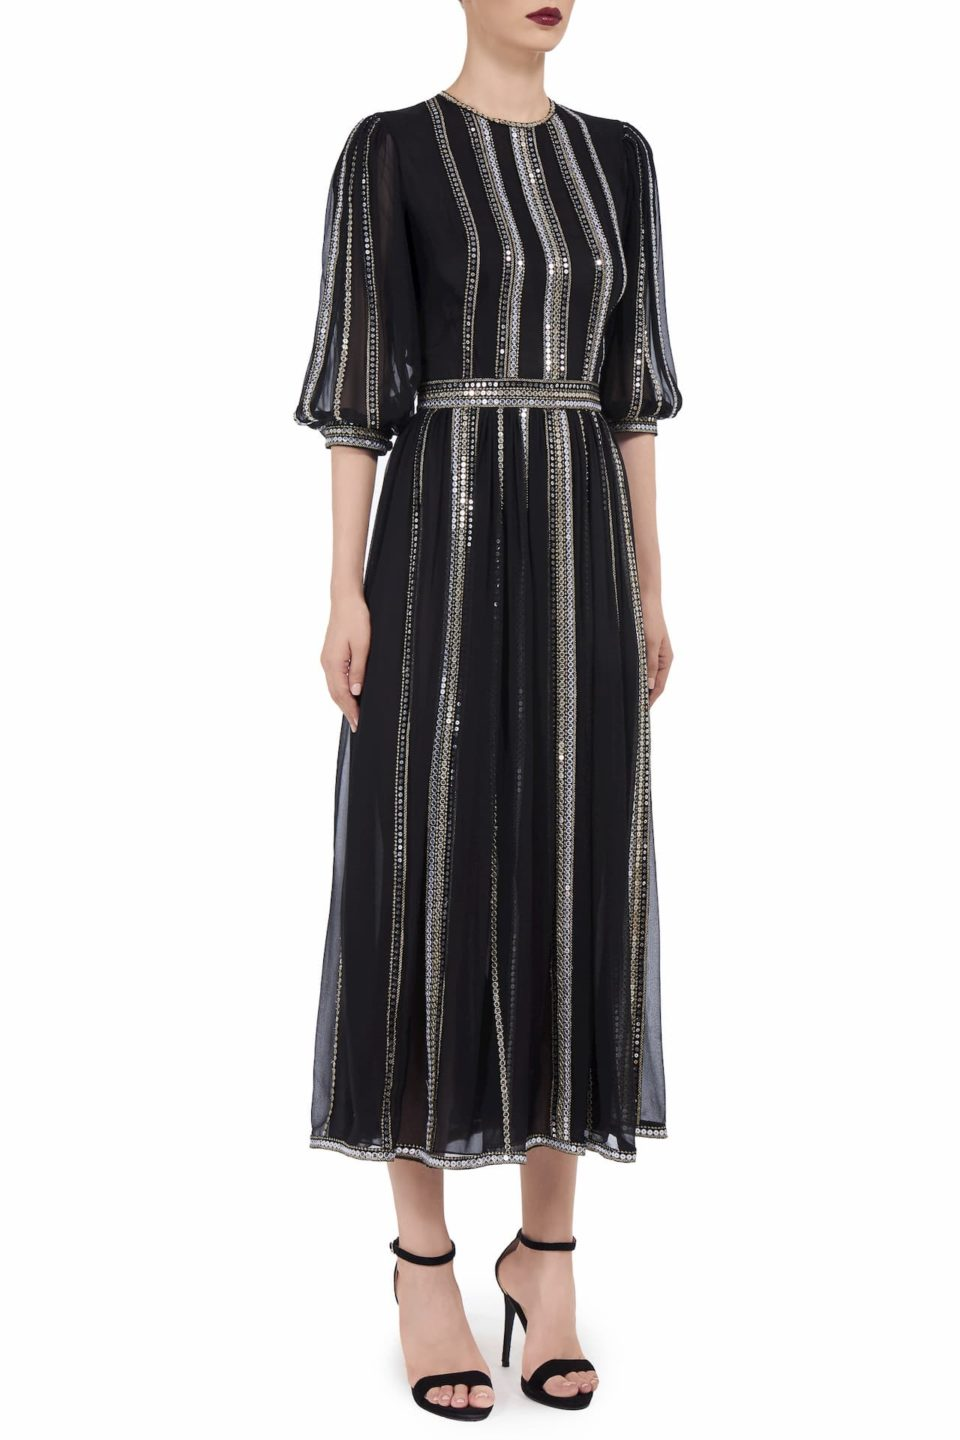 Constance FW2040 black Silk Chiffon Puff-Sleeve Dress with Linear Sequin Trim & Metallic Stitching